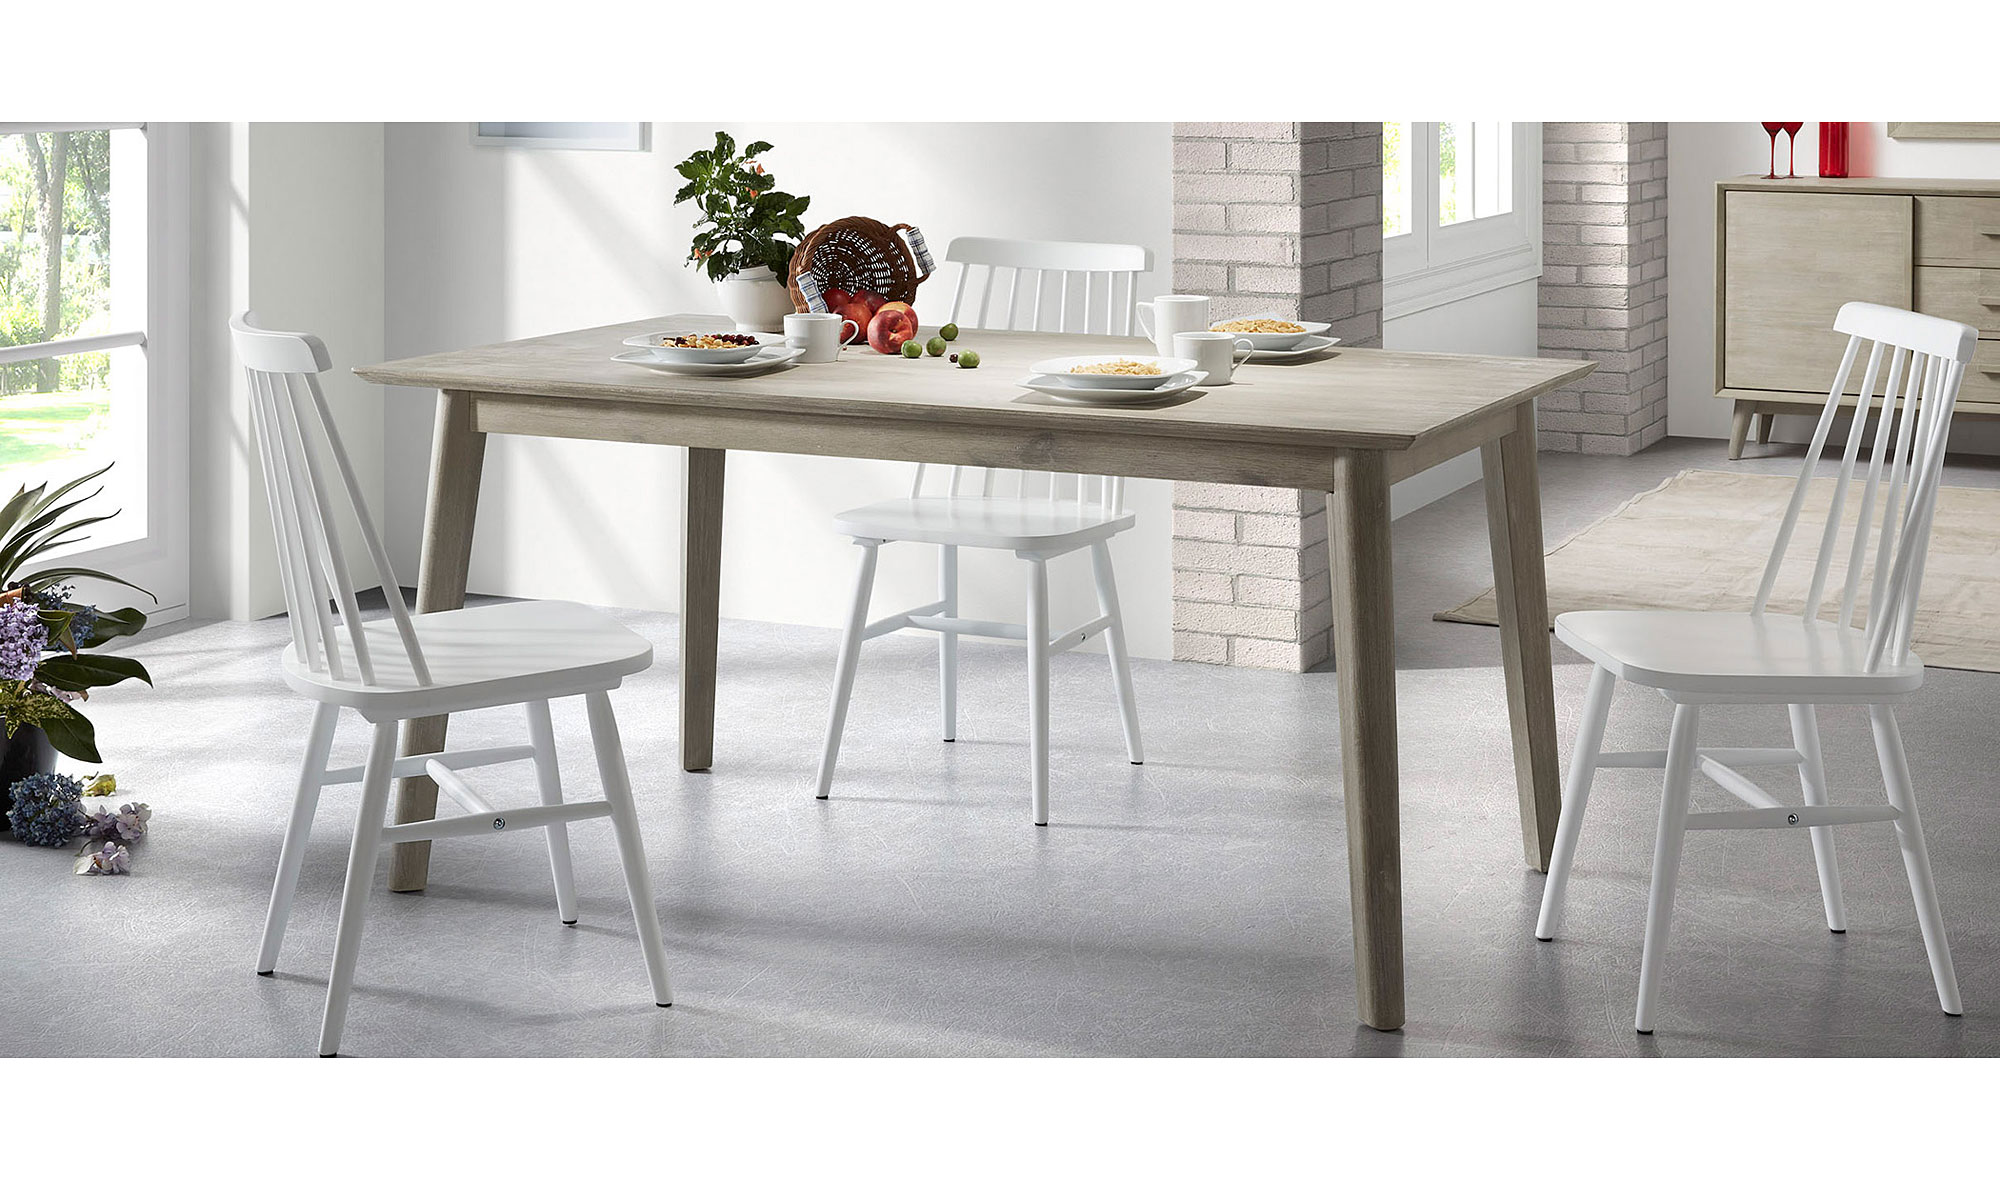 Mesa de comedor madera n rdica derwon no disponible en for Muebles contemporaneos de madera